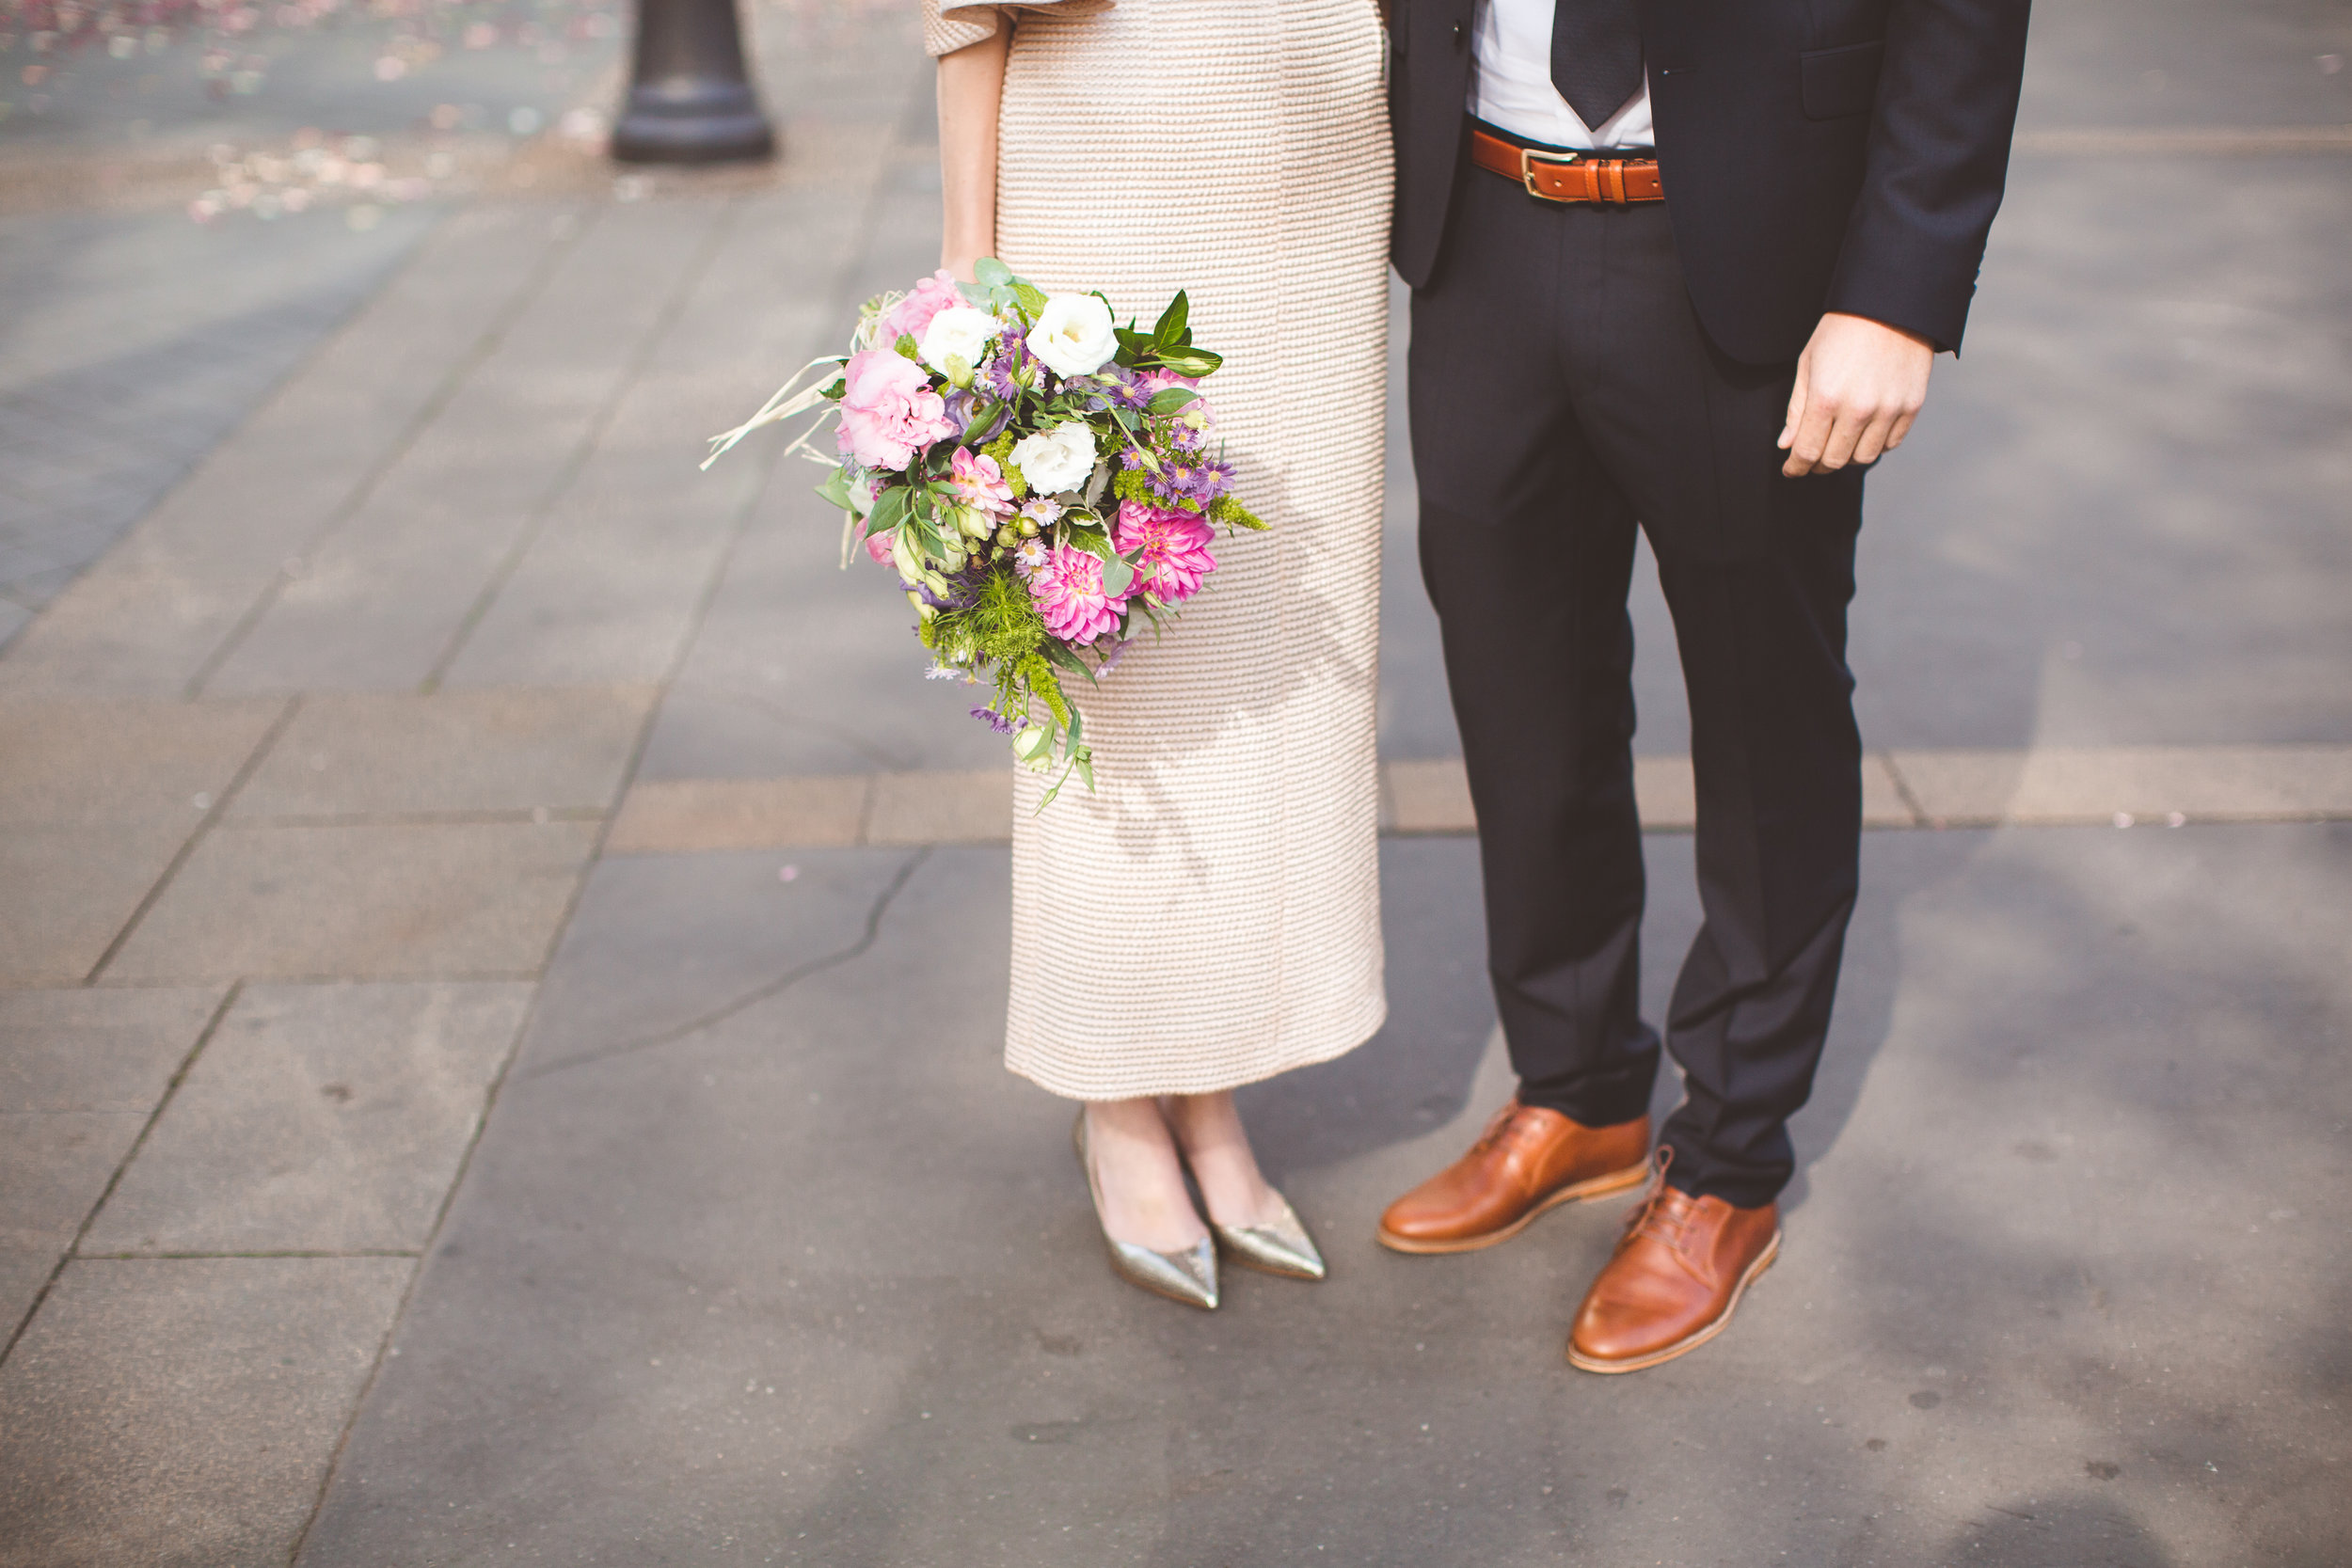 Emma&Nico_WeddingParis_by_UlaBlocksage-7.jpg